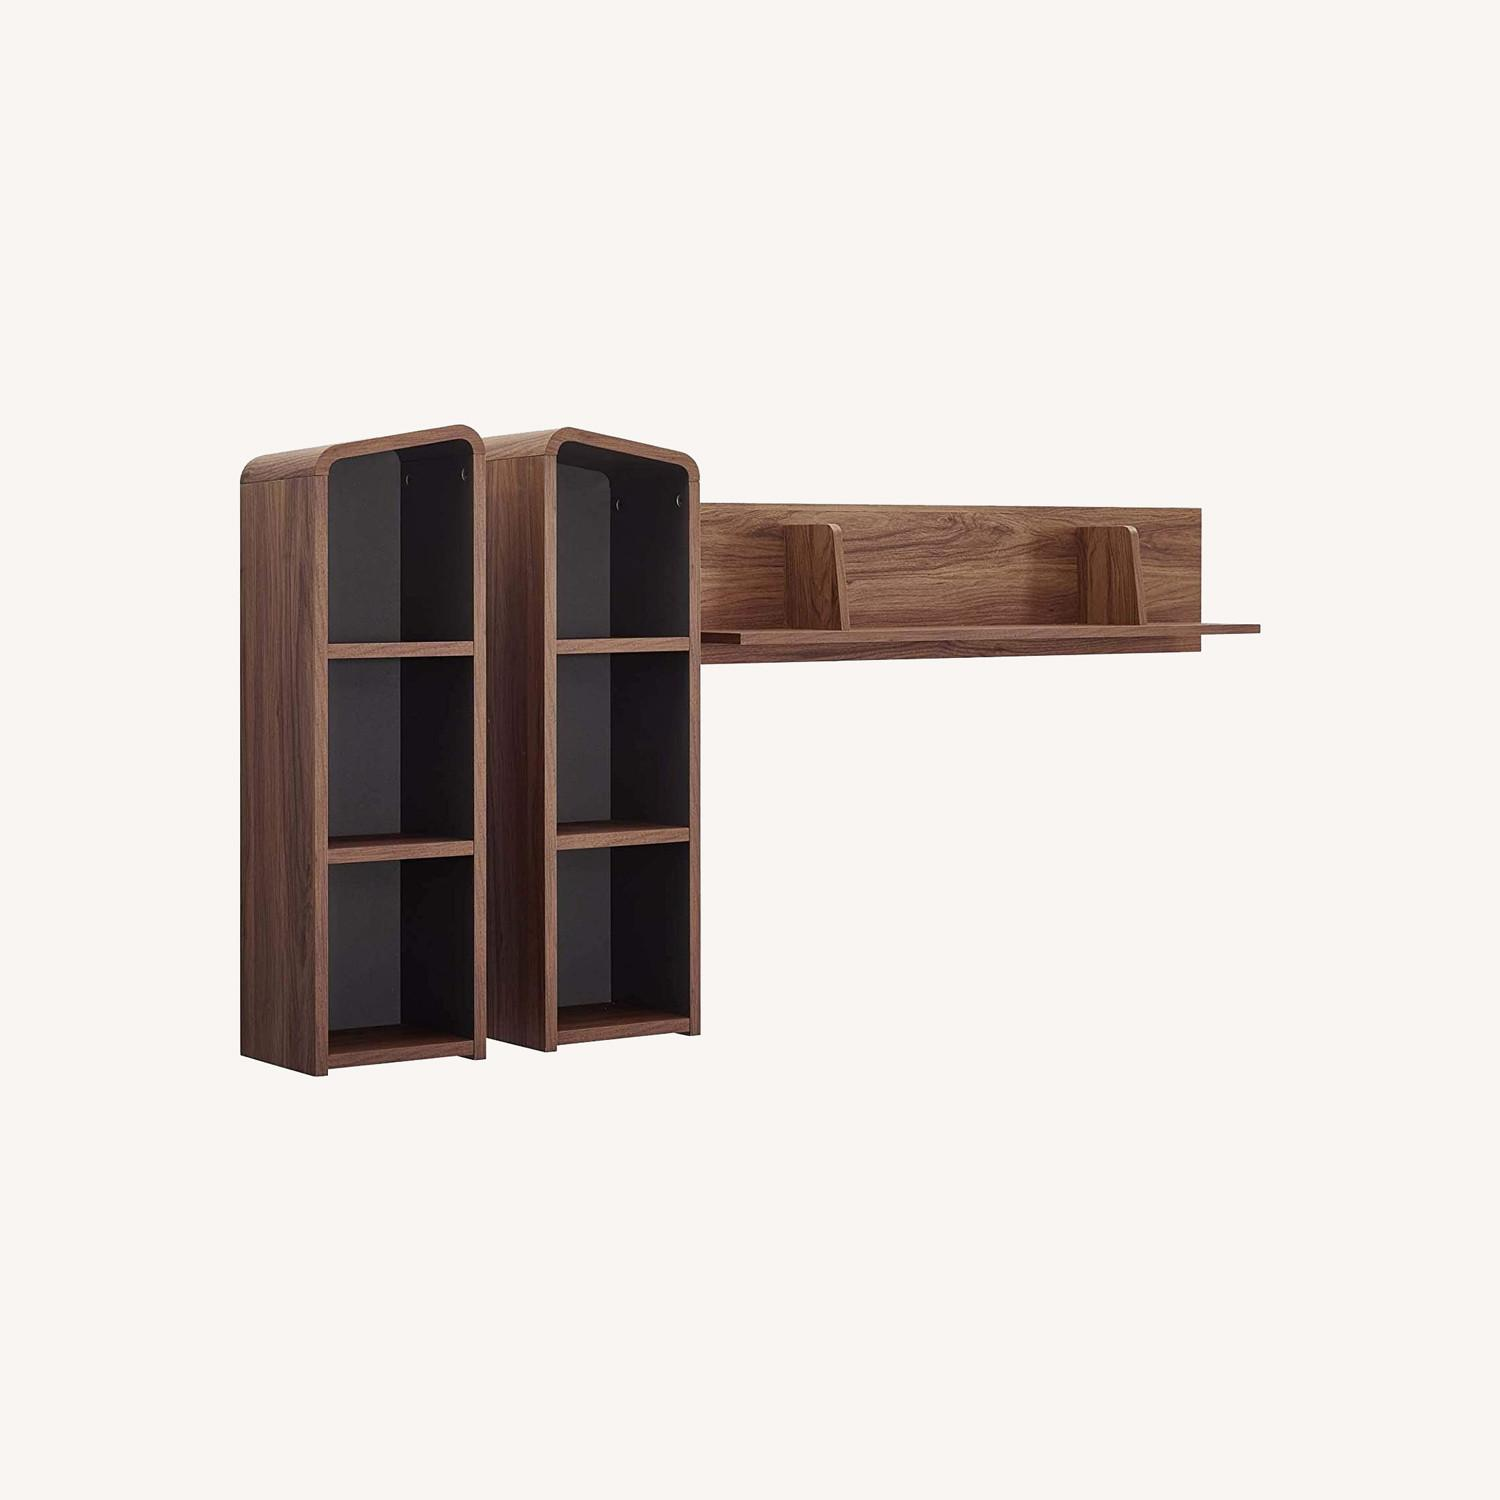 Wall Mounted Shelves In Walnut W/ Rounded Edges - image-4